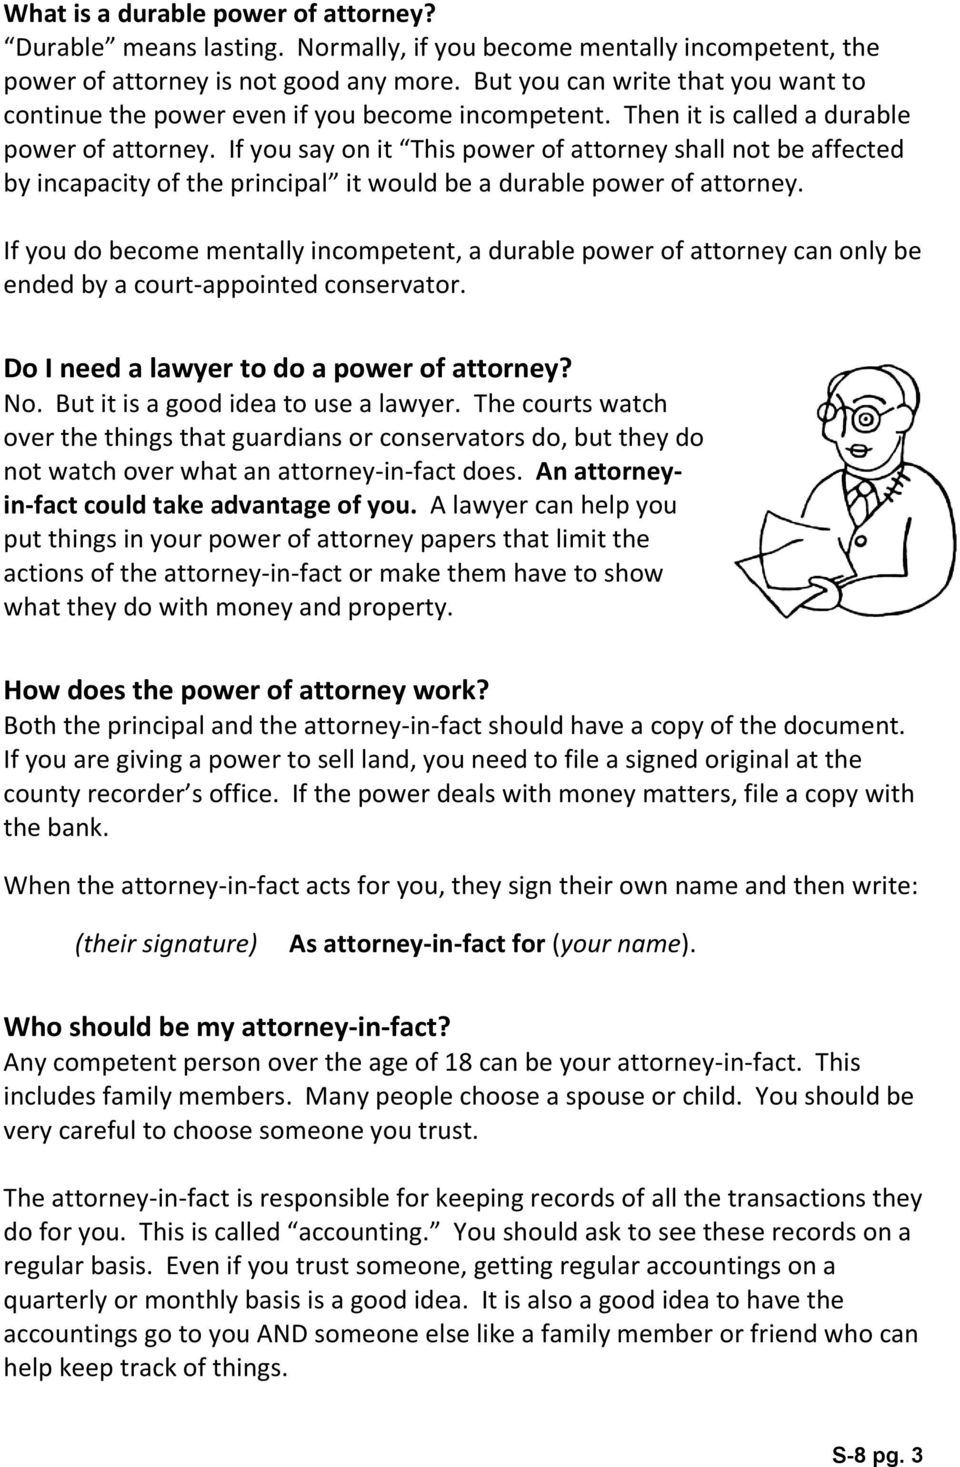 If you say on it This power of attorney shall not be affected by incapacity of the principal it would be a durable power of attorney.